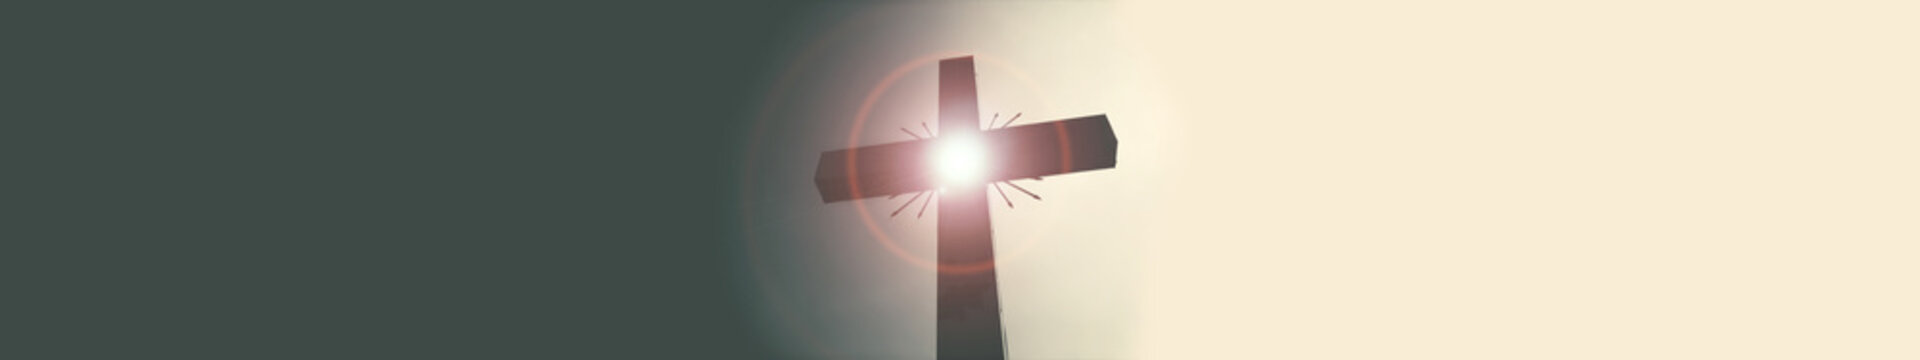 banner of Cross glowing, circle lens flare, dividing dark and light areas